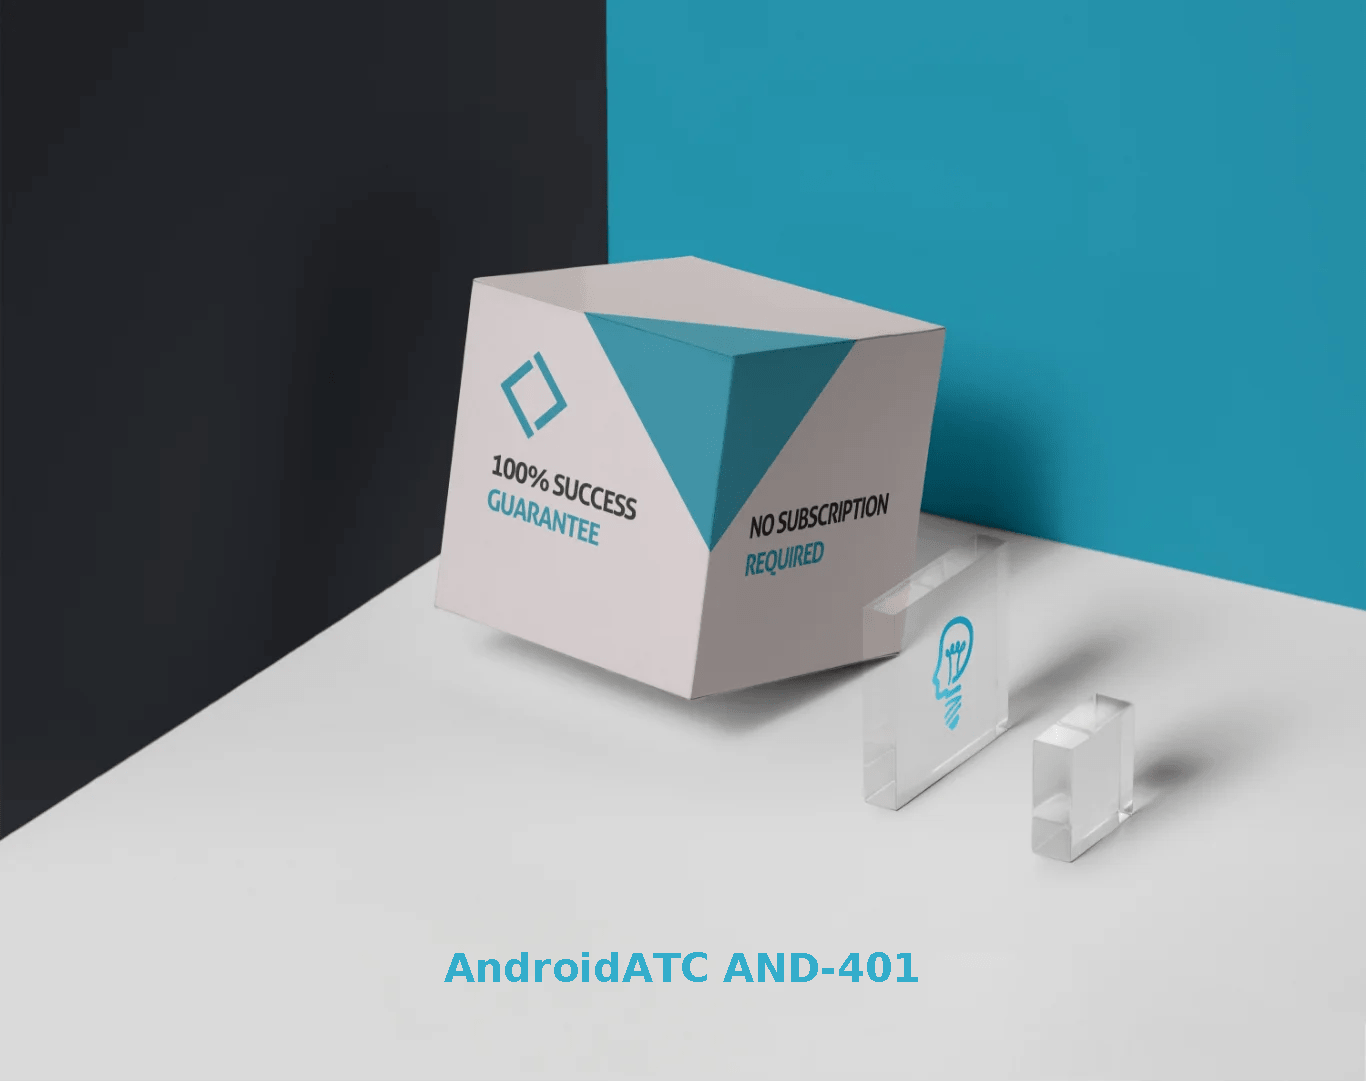 AndroidATC AND-401 Exams